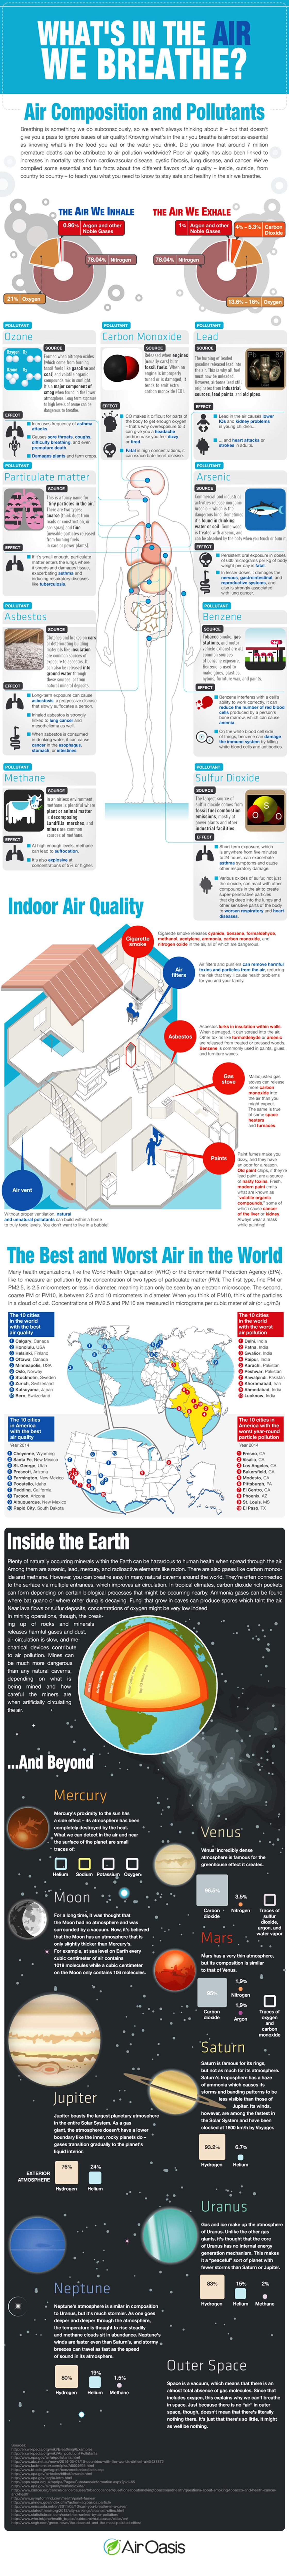 Composition of Air We Breathe Infographic